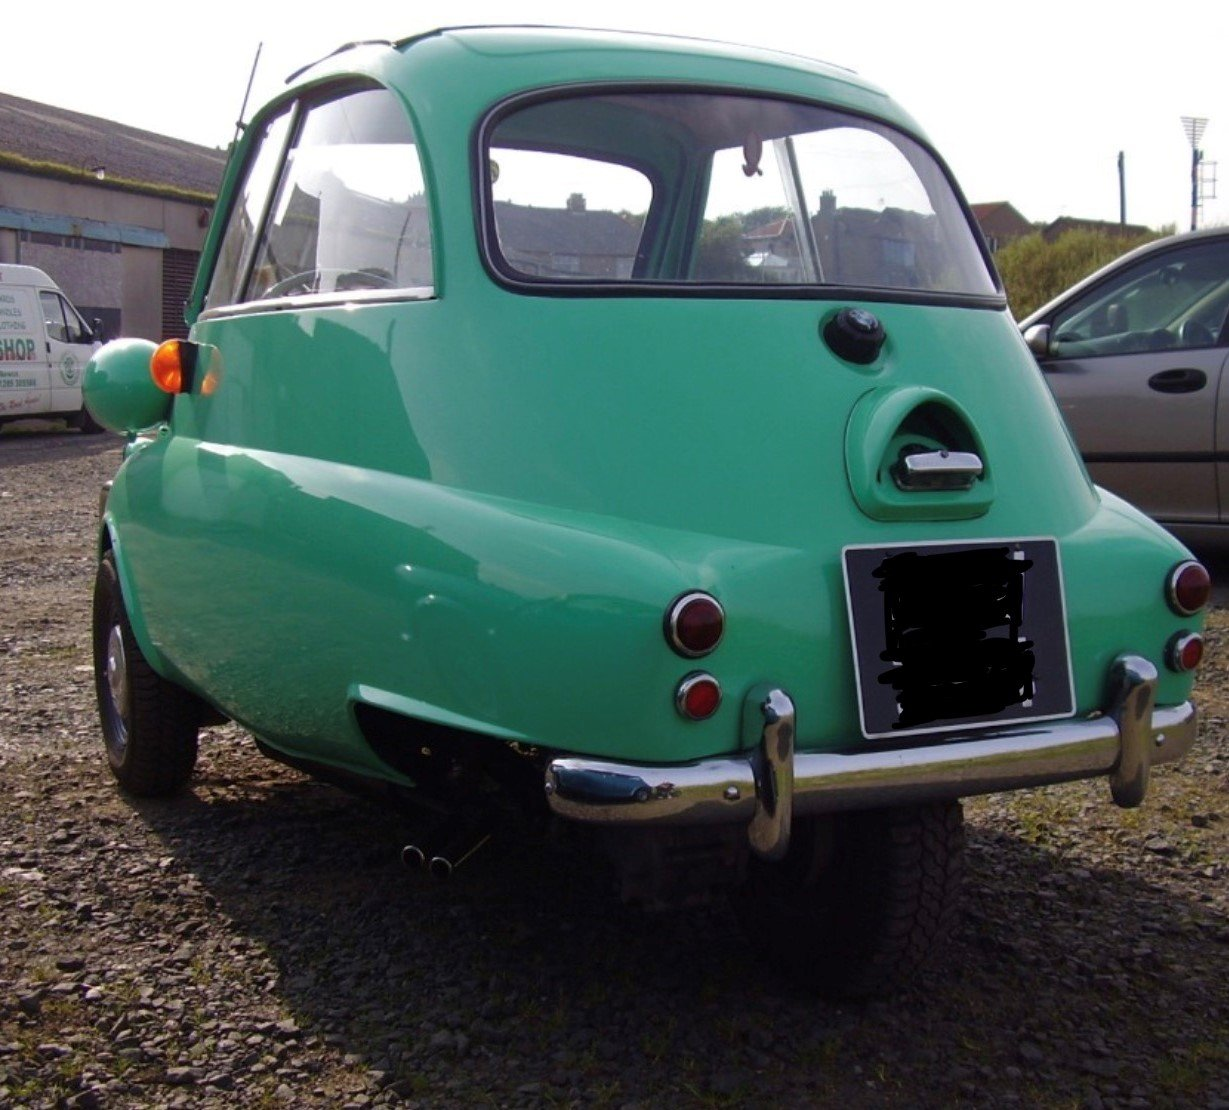 1960 BMW ISETTA BUBBLE CAR LHD FULLY RESTORED  For Sale (picture 2 of 5)